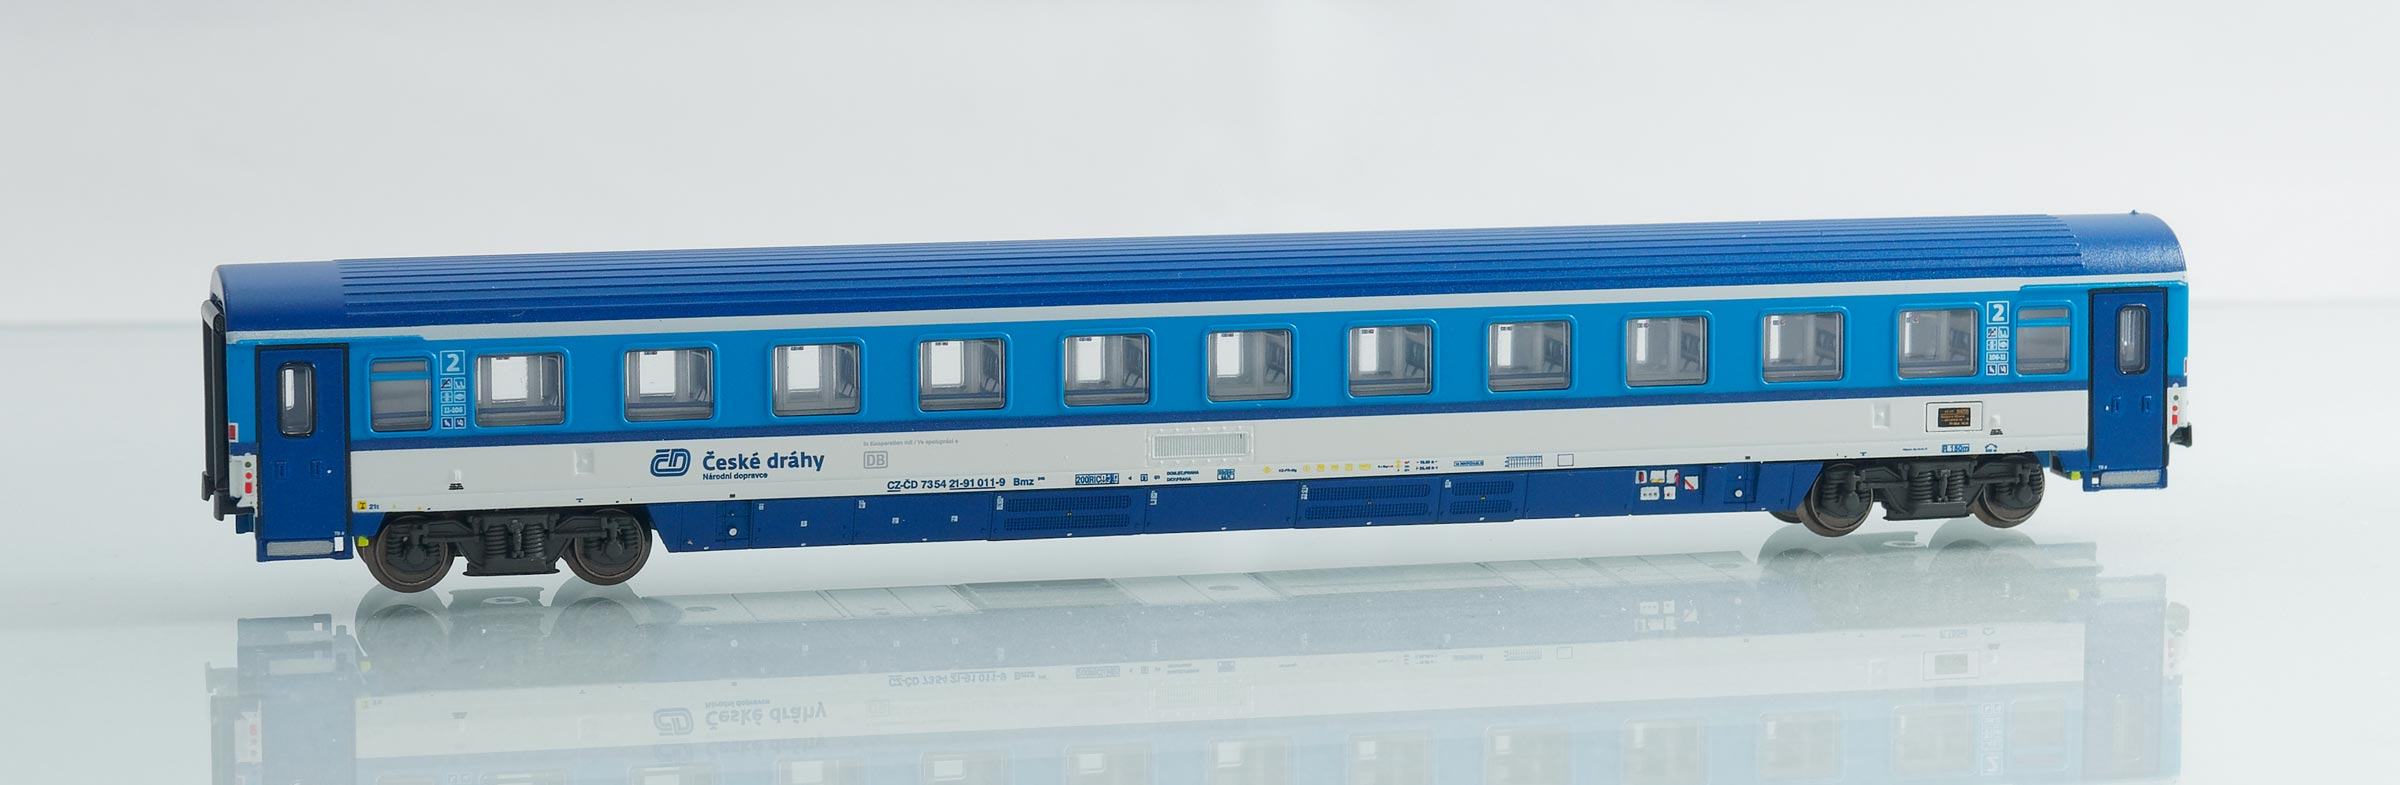 195431: EuroCity compartment car 2. class, type Bmz 245 of the Czech Railways CD